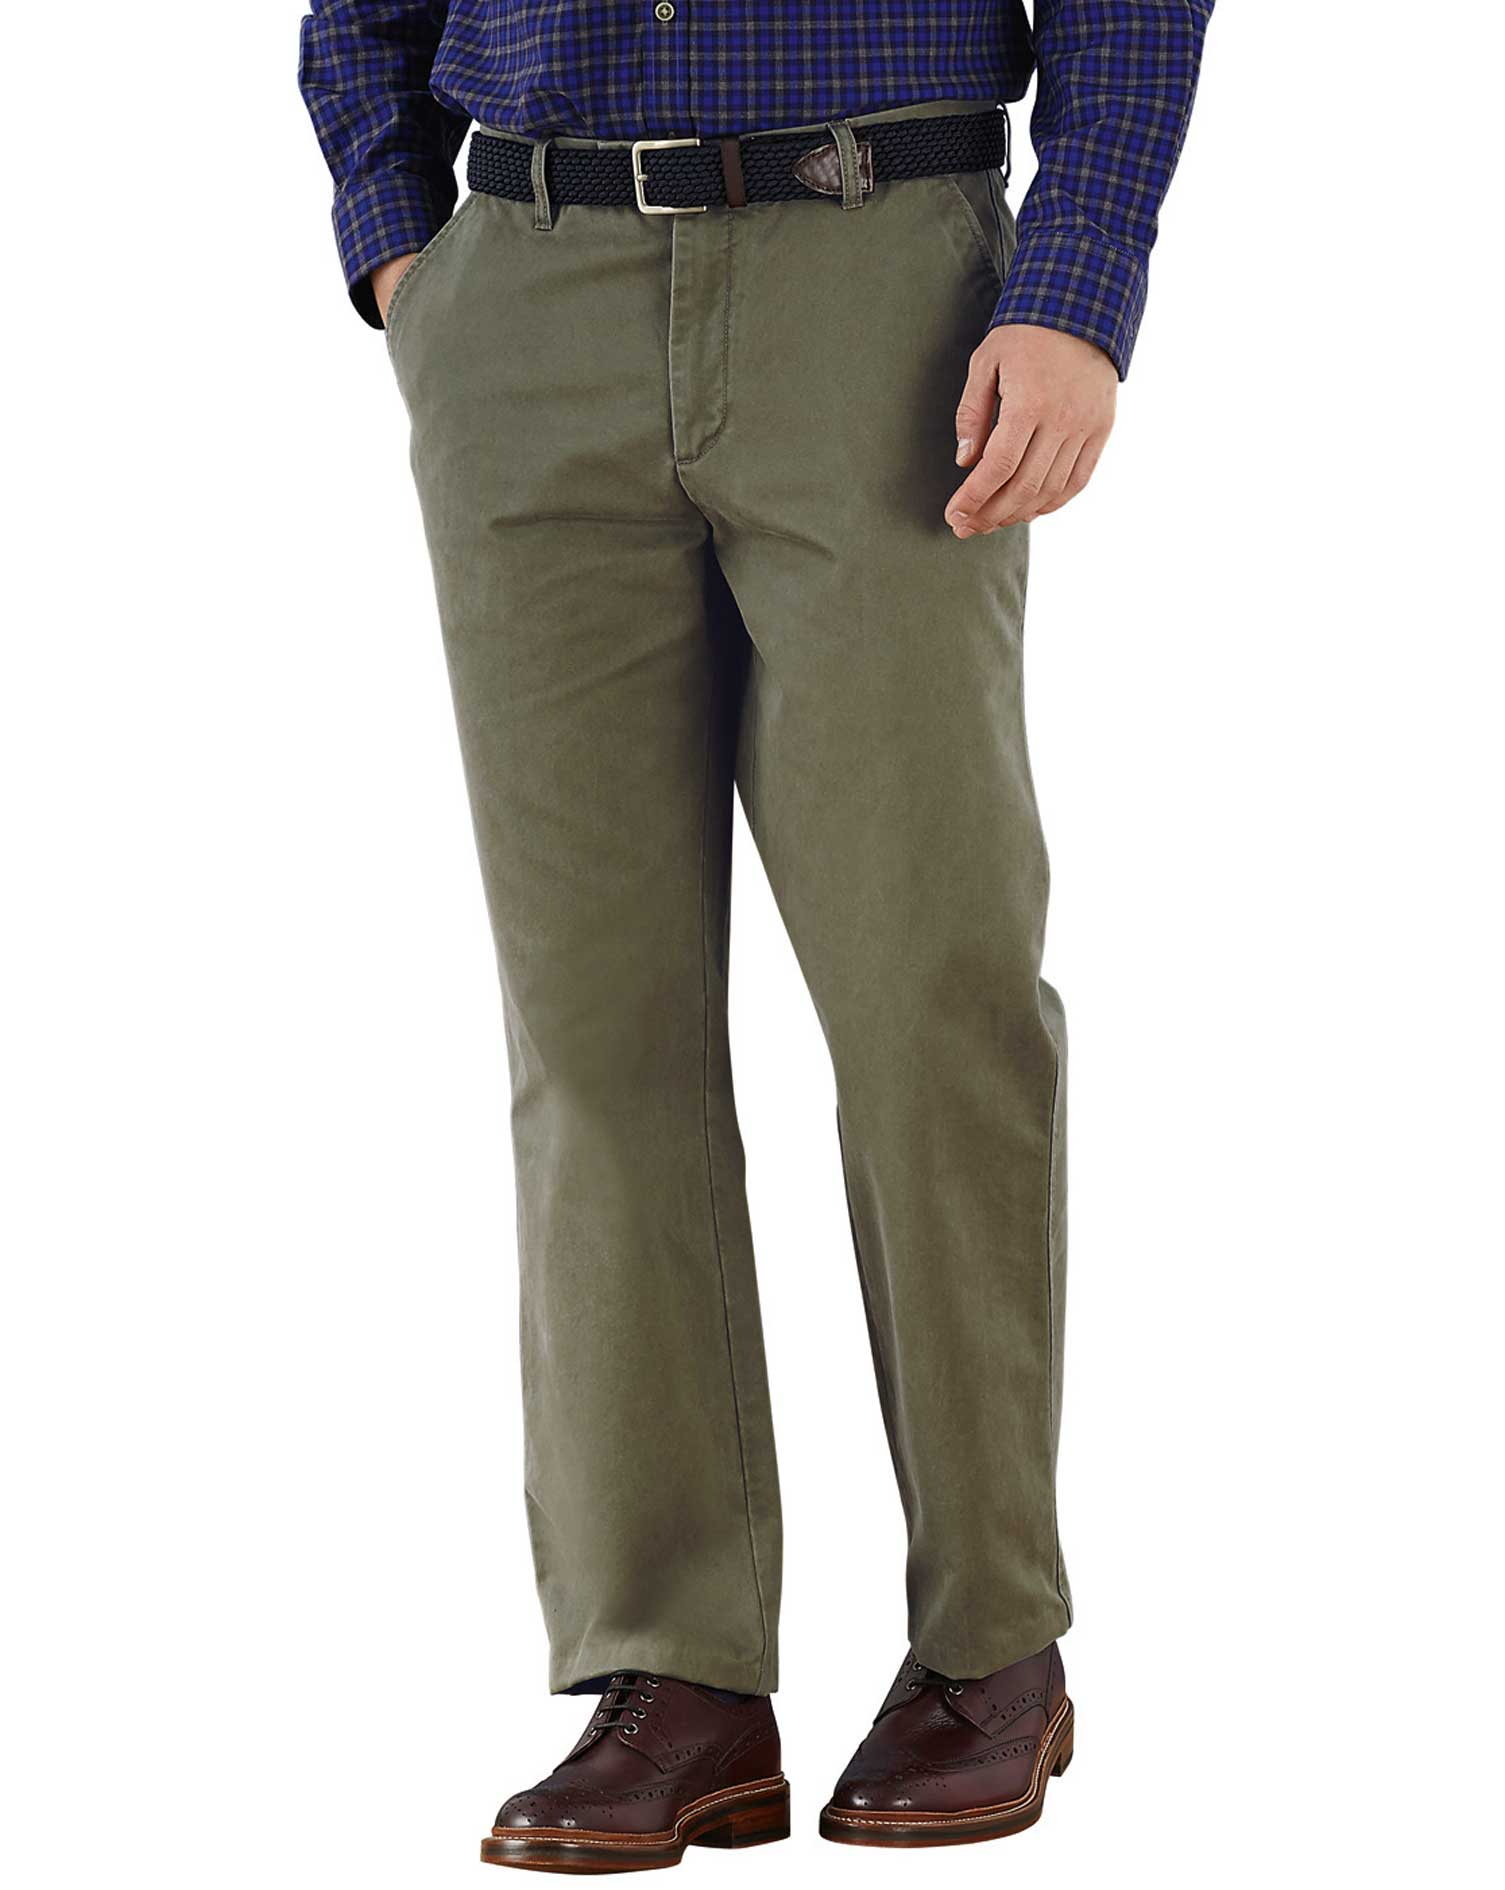 Olive Classic Fit Flat Front Cotton Chino Trousers Size W32 L29 by Charles Tyrwhitt